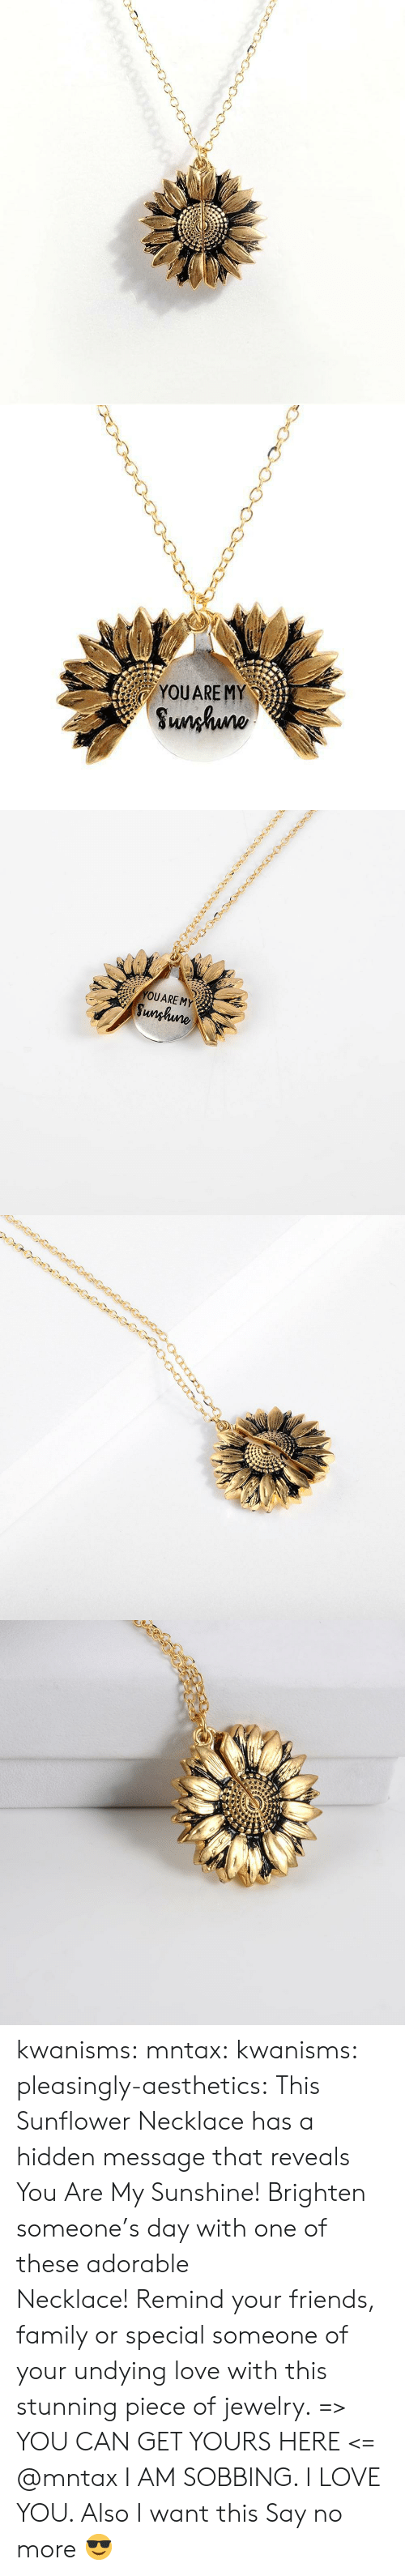 sobbing: YOUARE MY  Sunhuno   YOUARE MY  Sunghune kwanisms:  mntax:  kwanisms:  pleasingly-aesthetics:  This Sunflower Necklace has a hidden message that reveals You Are My Sunshine! Brighten someone's day with one of these adorable Necklace! Remind your friends, family or special someone of your undying love with this stunning piece of jewelry. => YOU CAN GET YOURS HERE <=   @mntax   I AM SOBBING. I LOVE YOU. Also I want this  Say no more 😎